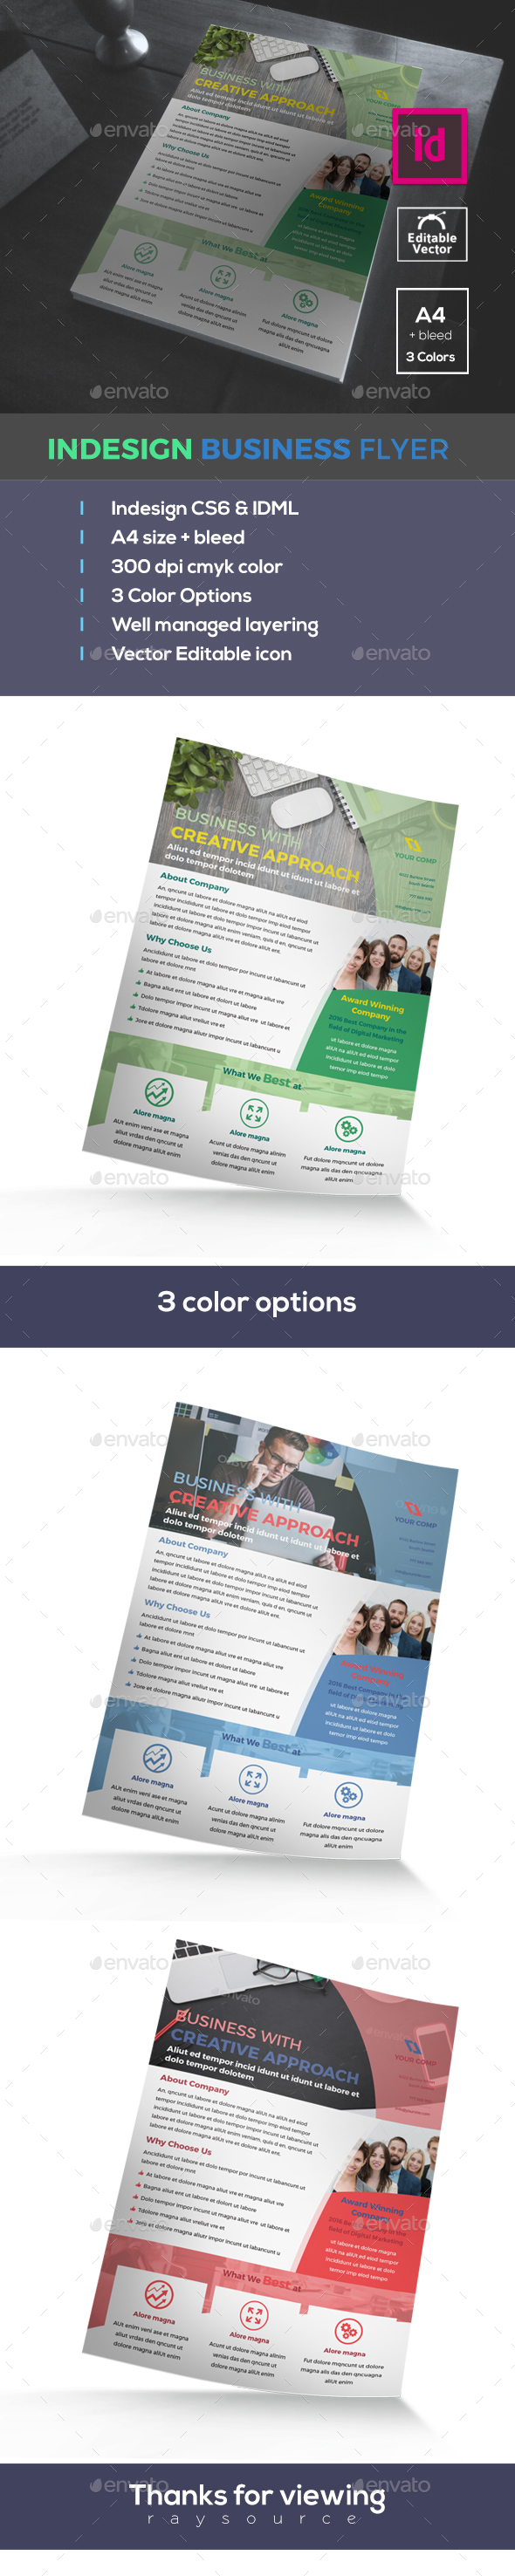 Indesign Business Flyer - Flyers Print Templates